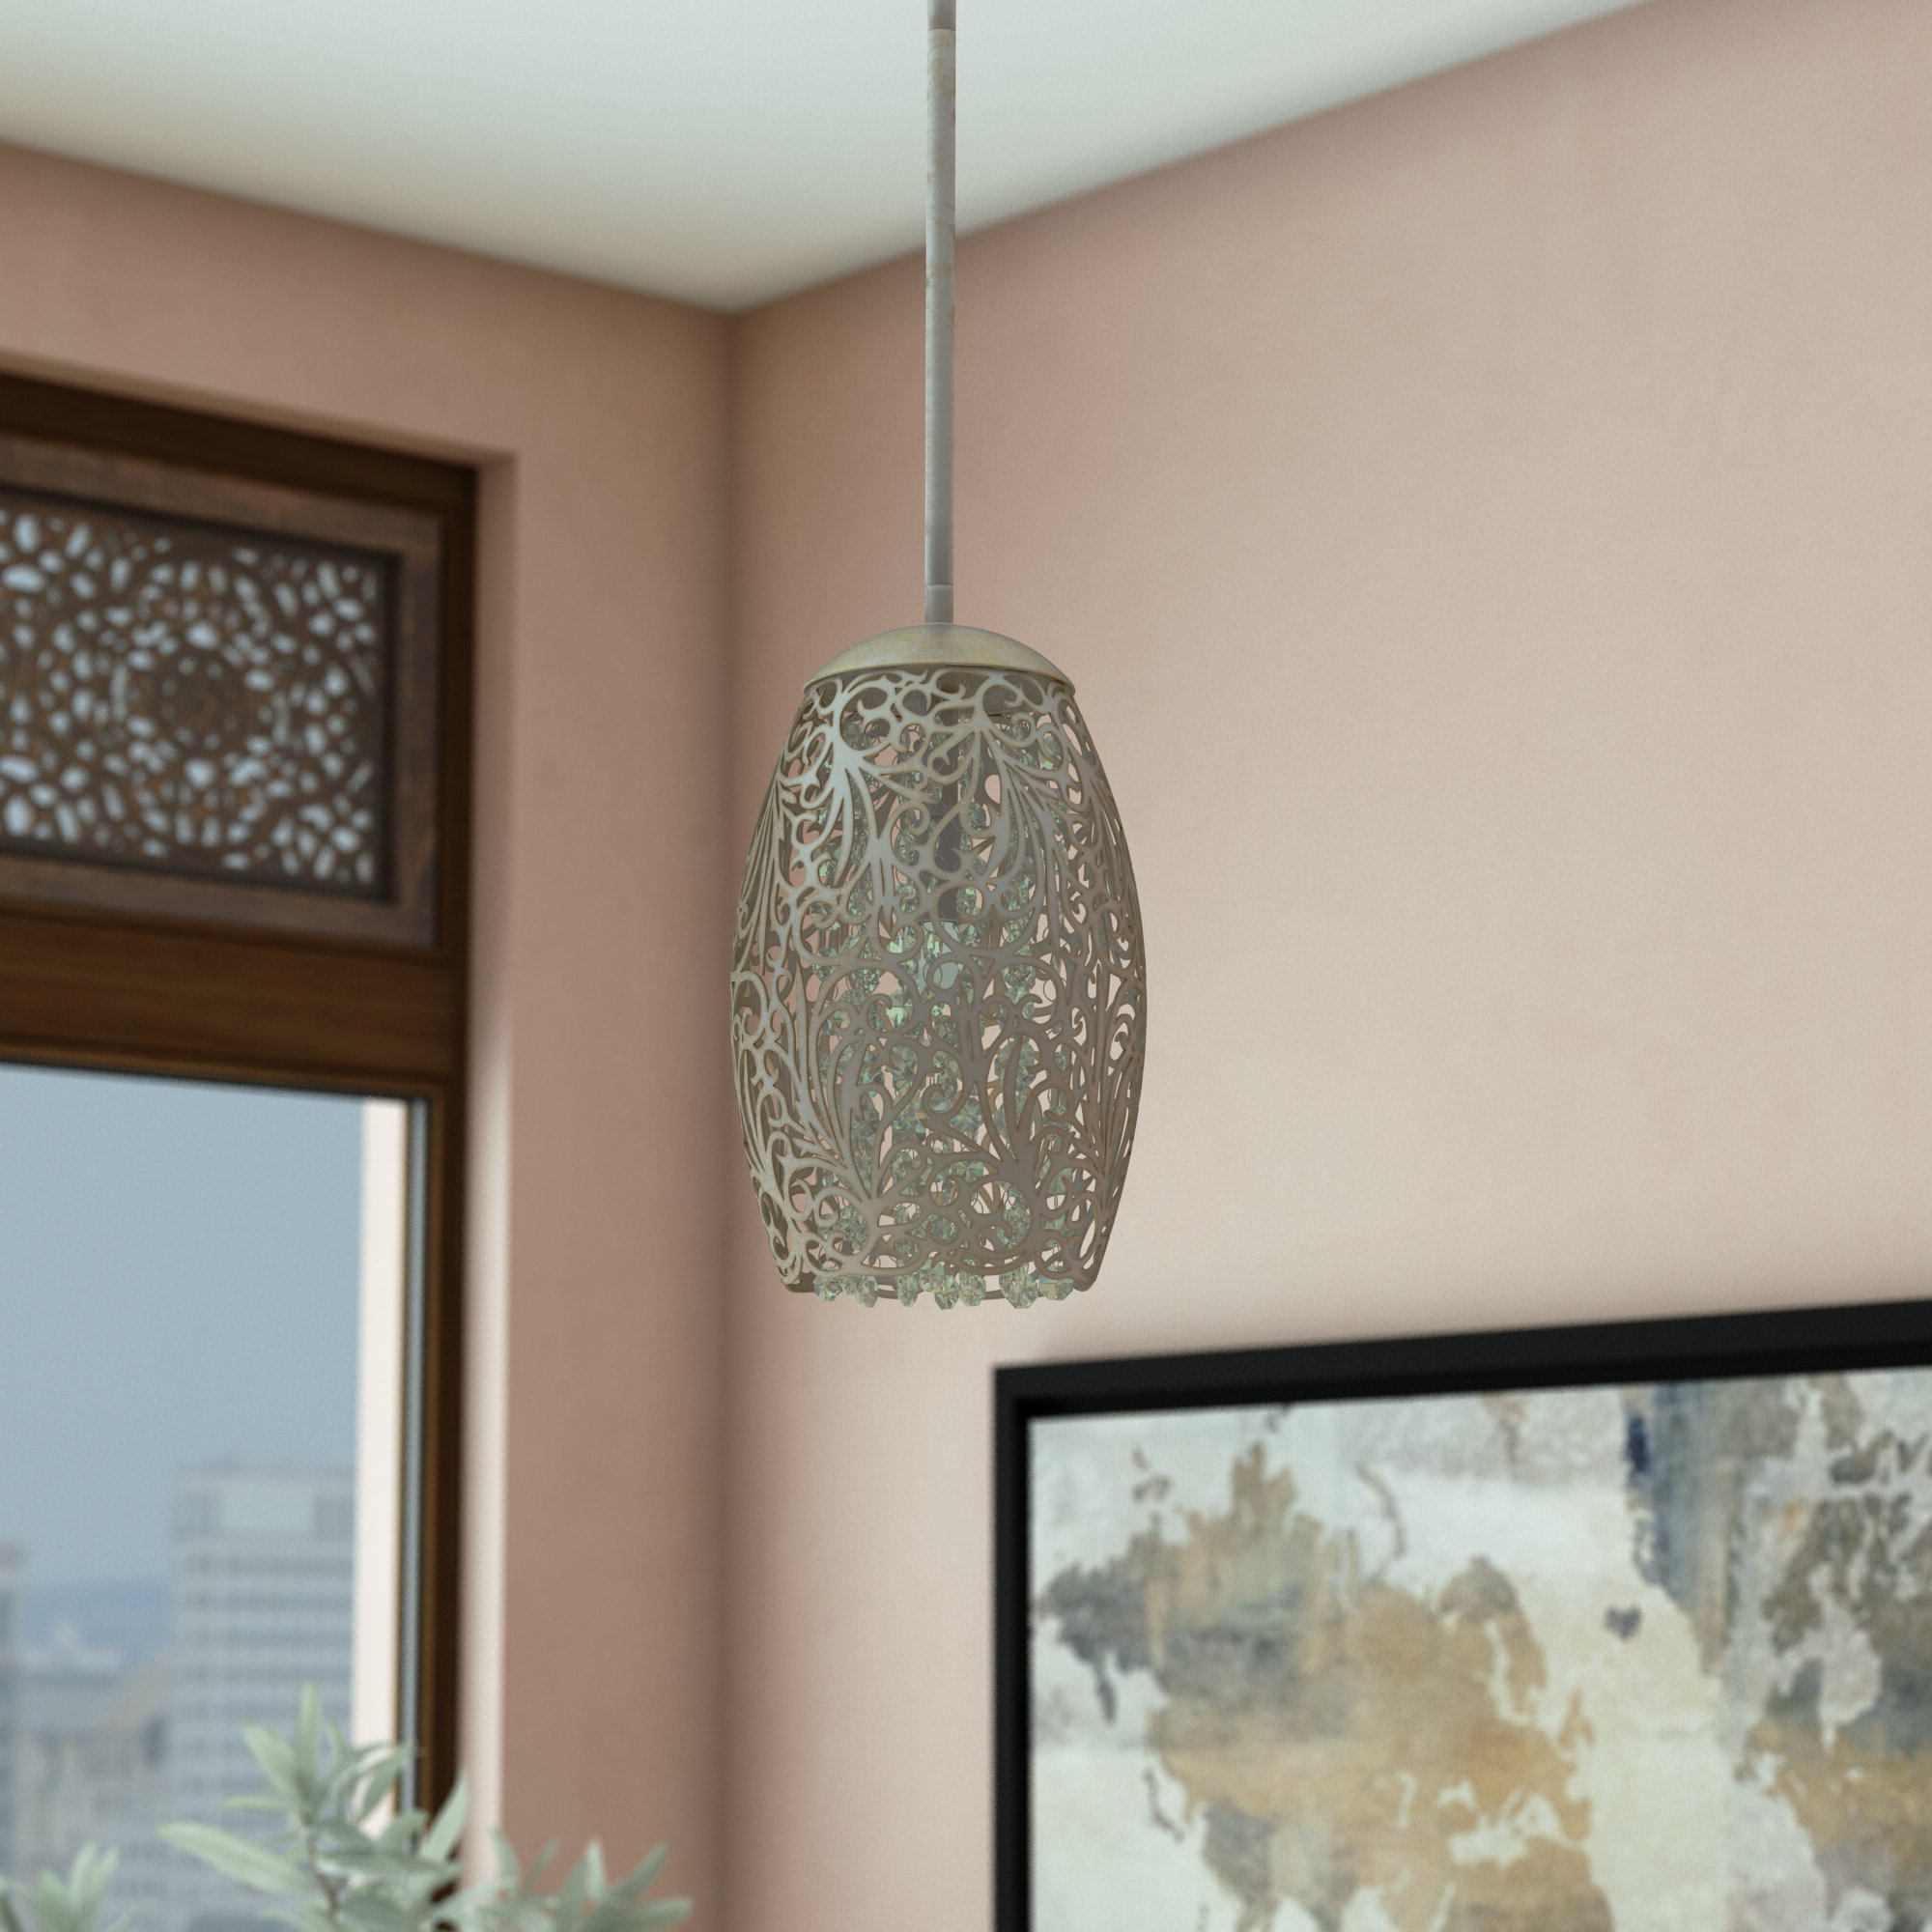 Giacinta 1 Light Single Bell Pendants With Regard To Best And Newest Kraker 1 Light Single Cylinder Pendant (View 9 of 20)